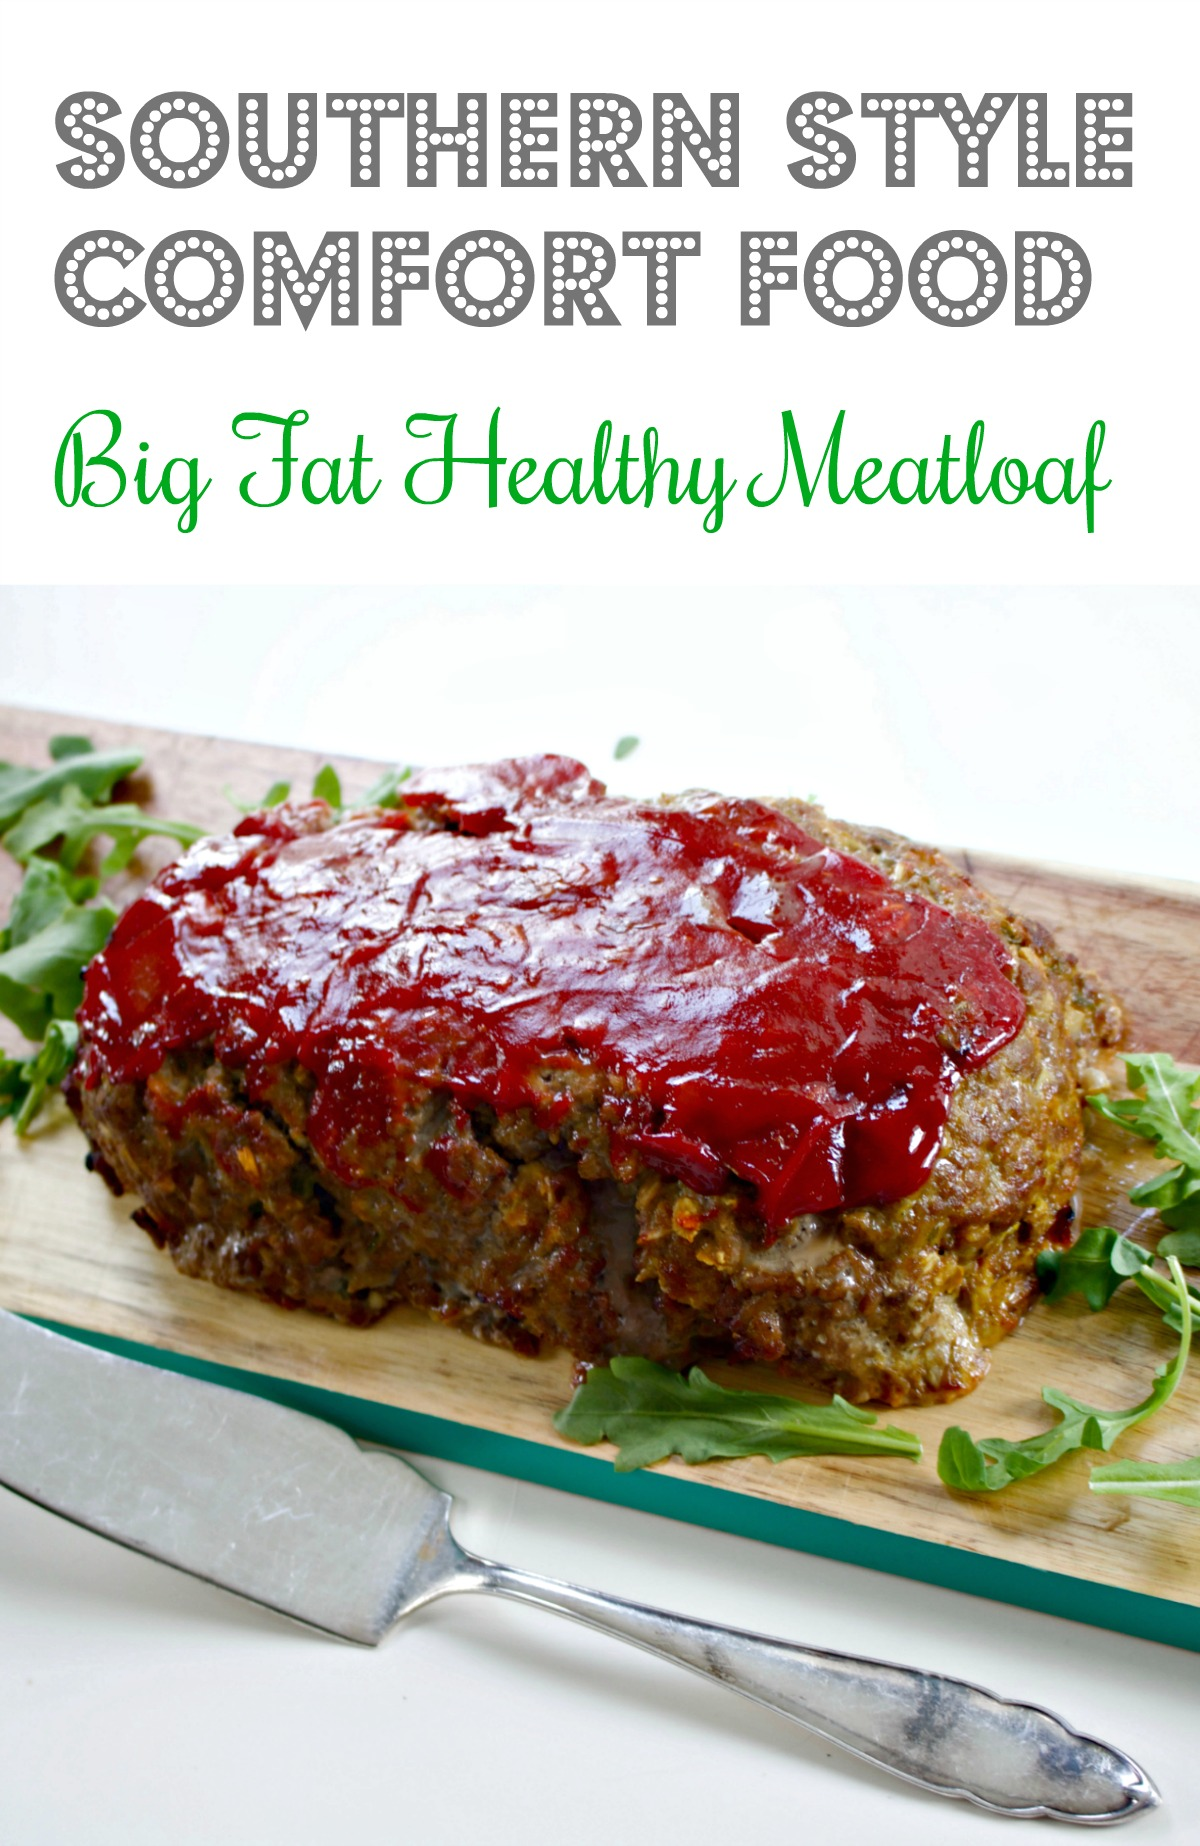 Big Fat Healthy Southern Meatloaf Recipe Made With Oats